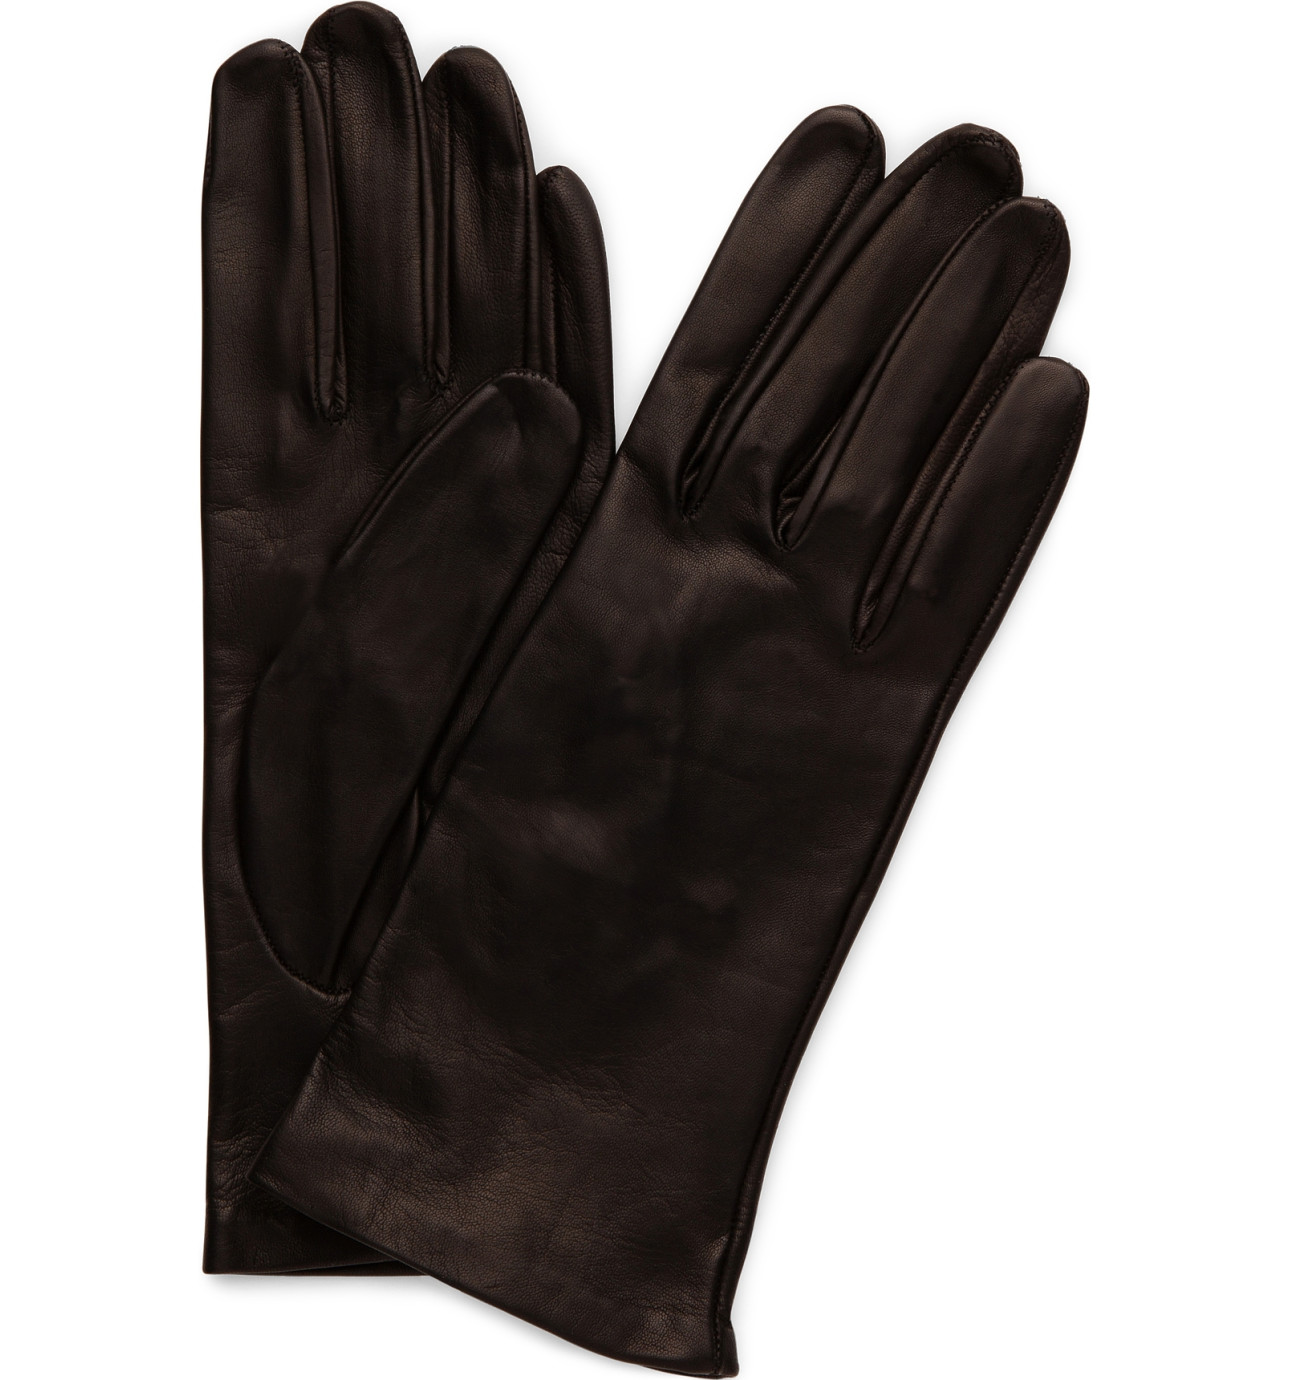 Mens leather driving gloves australia - Milana 2 Button Silk Glove